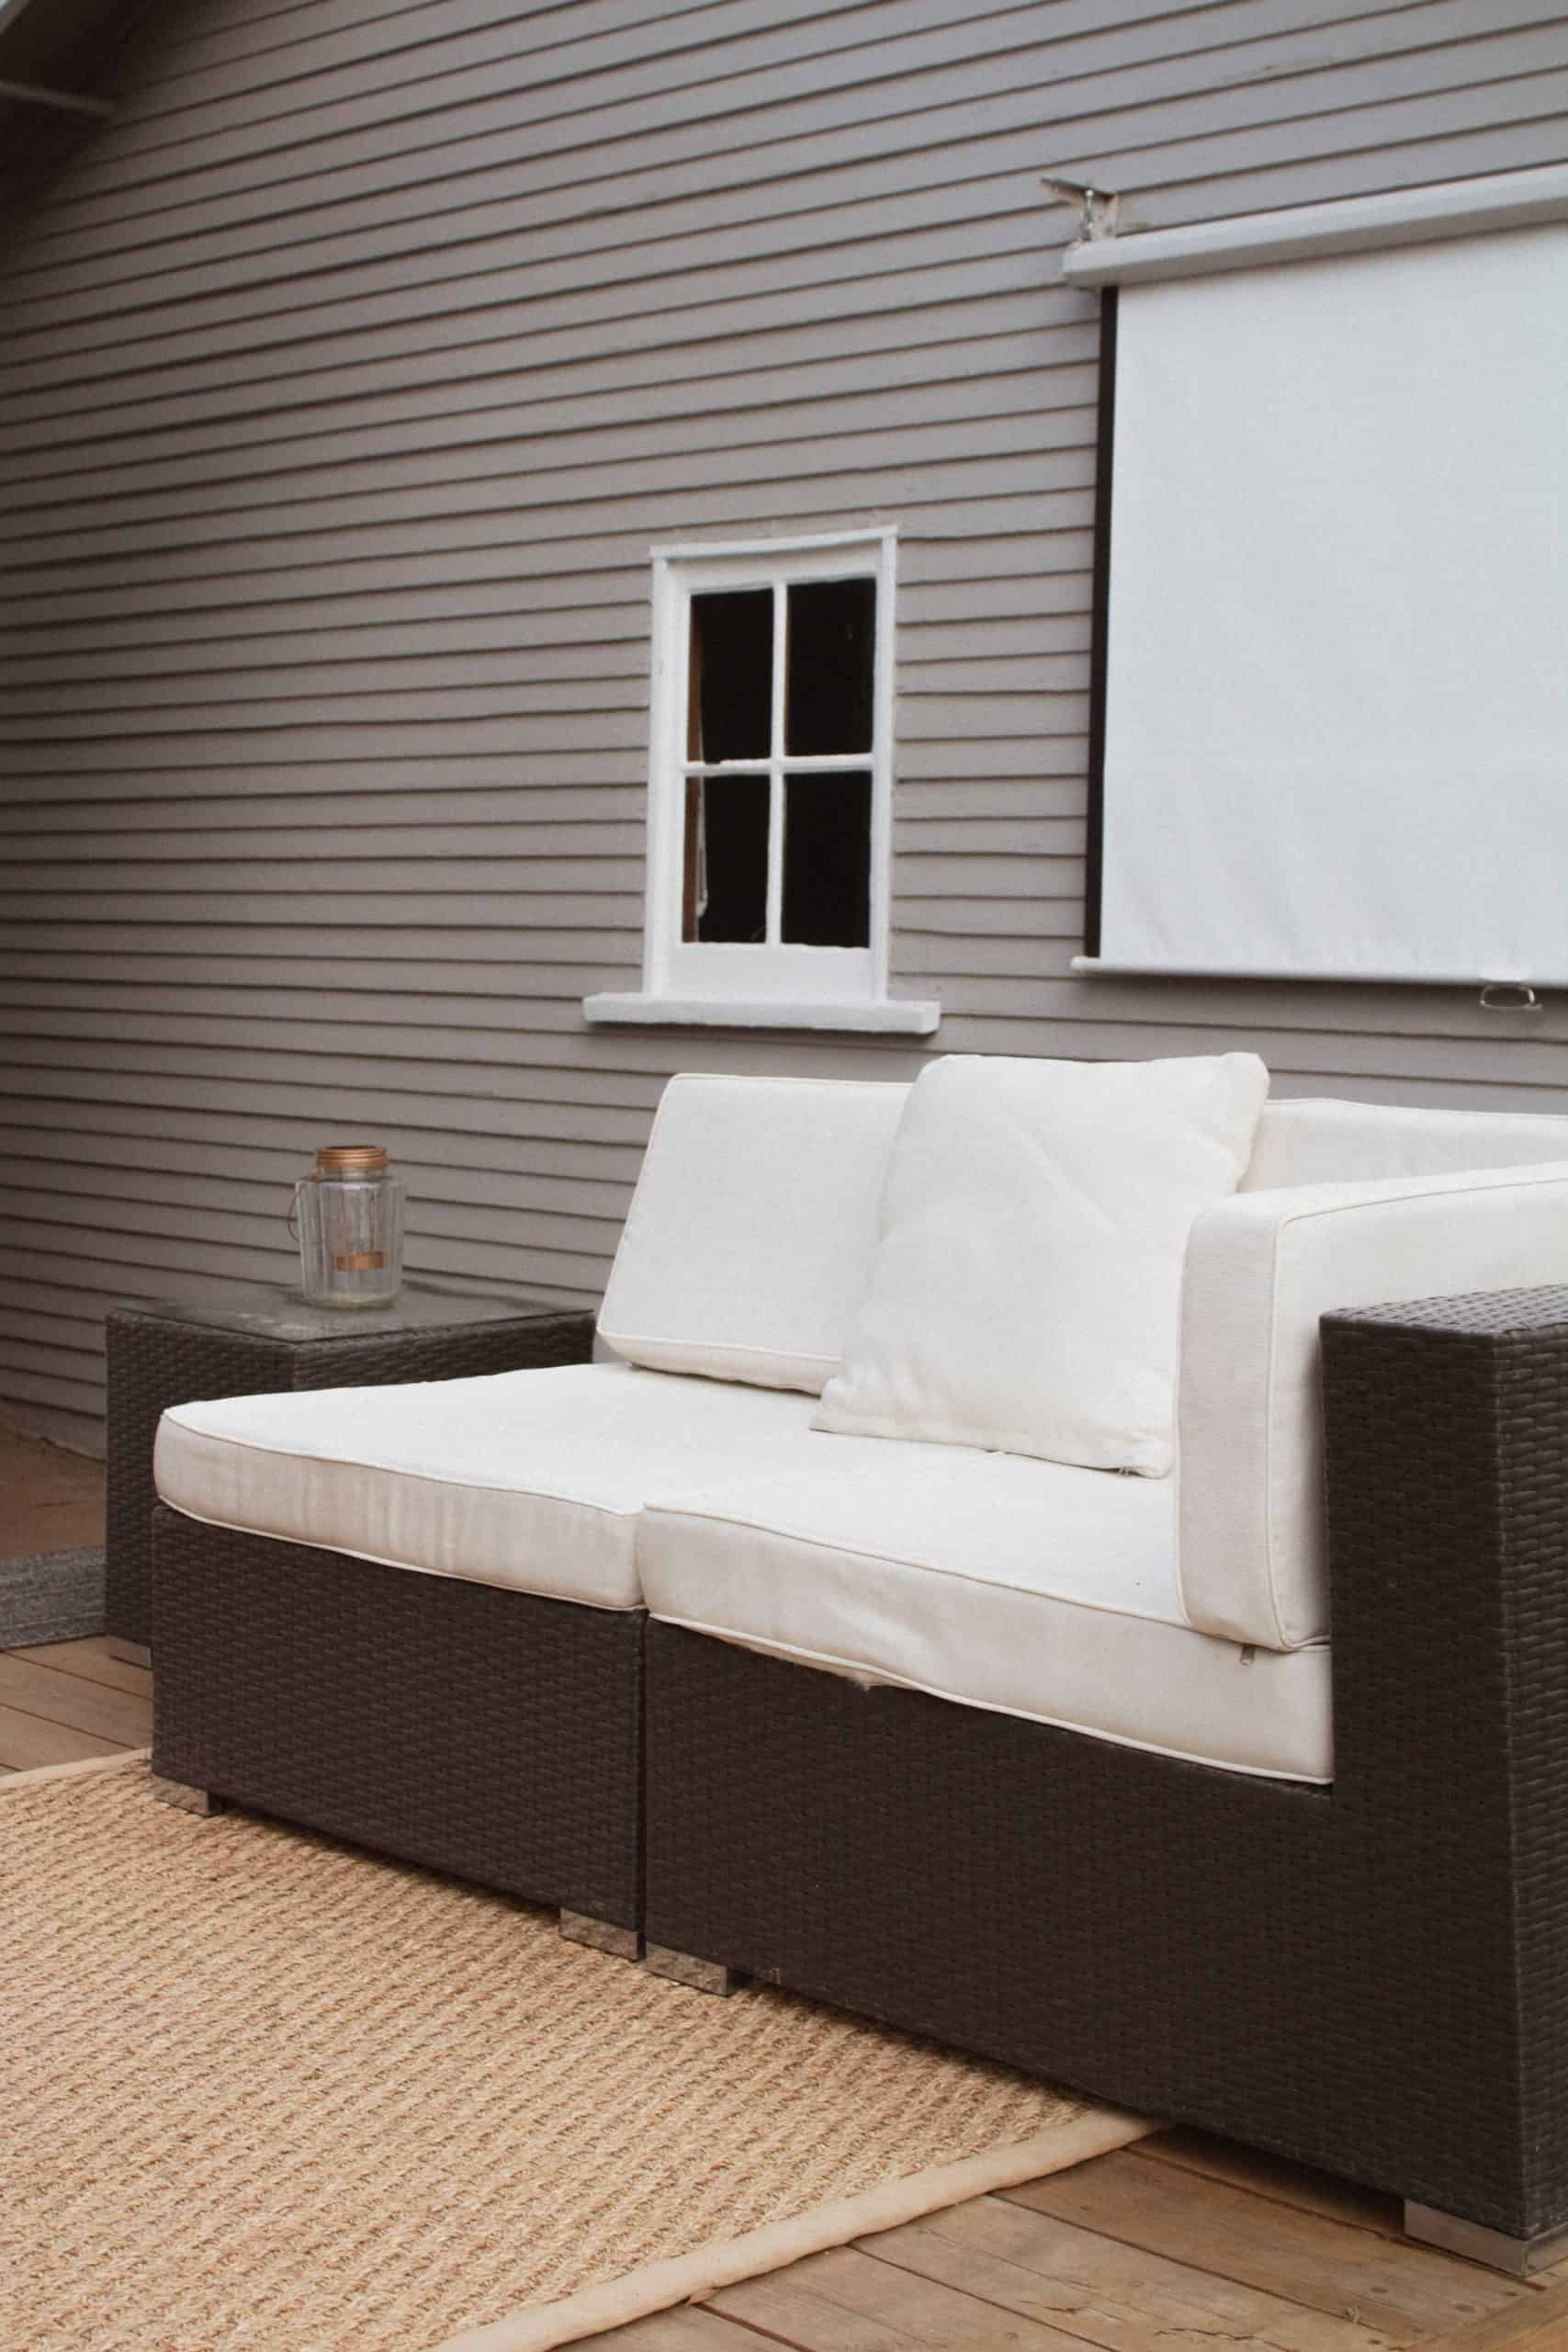 Outdoor sofa and furniture